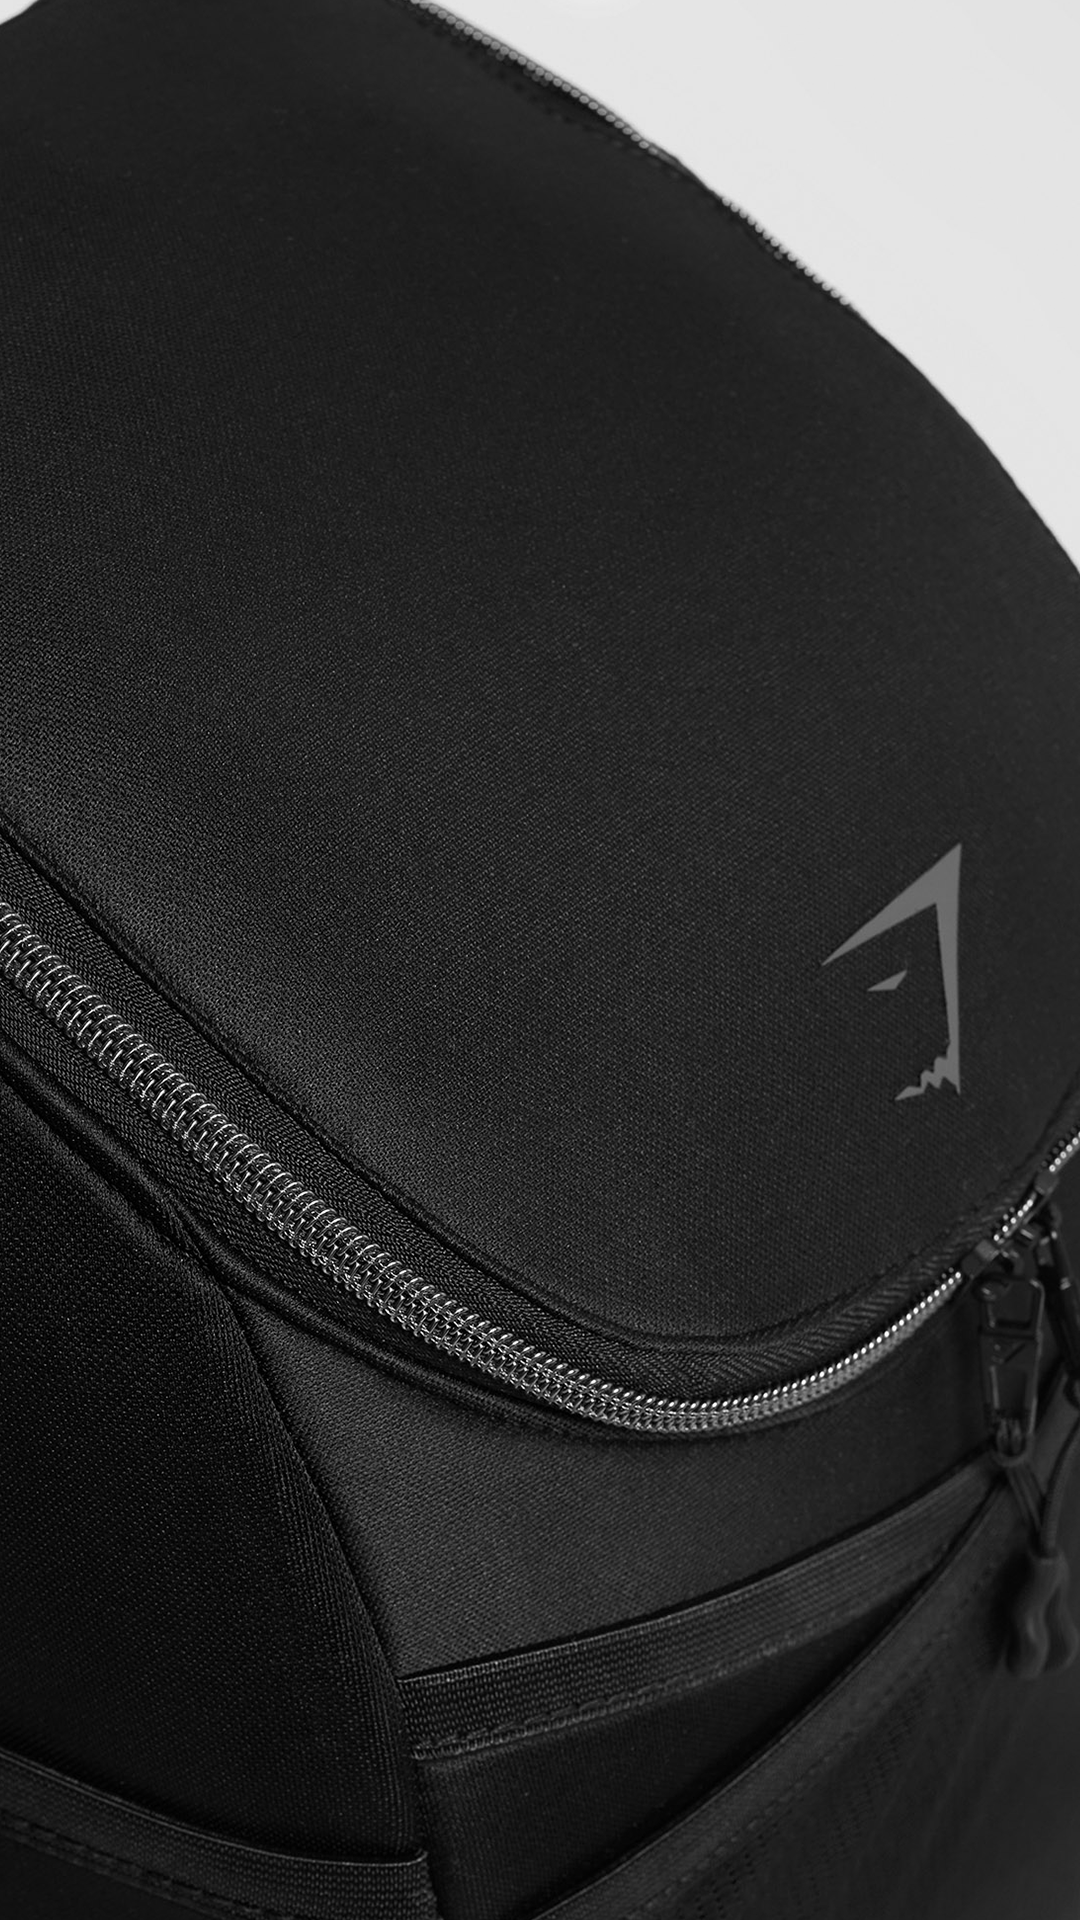 The Neoprene Lifestyle Backpack. Compact yet practical and carries your  essentials with character. Its 554d5a12bdebb